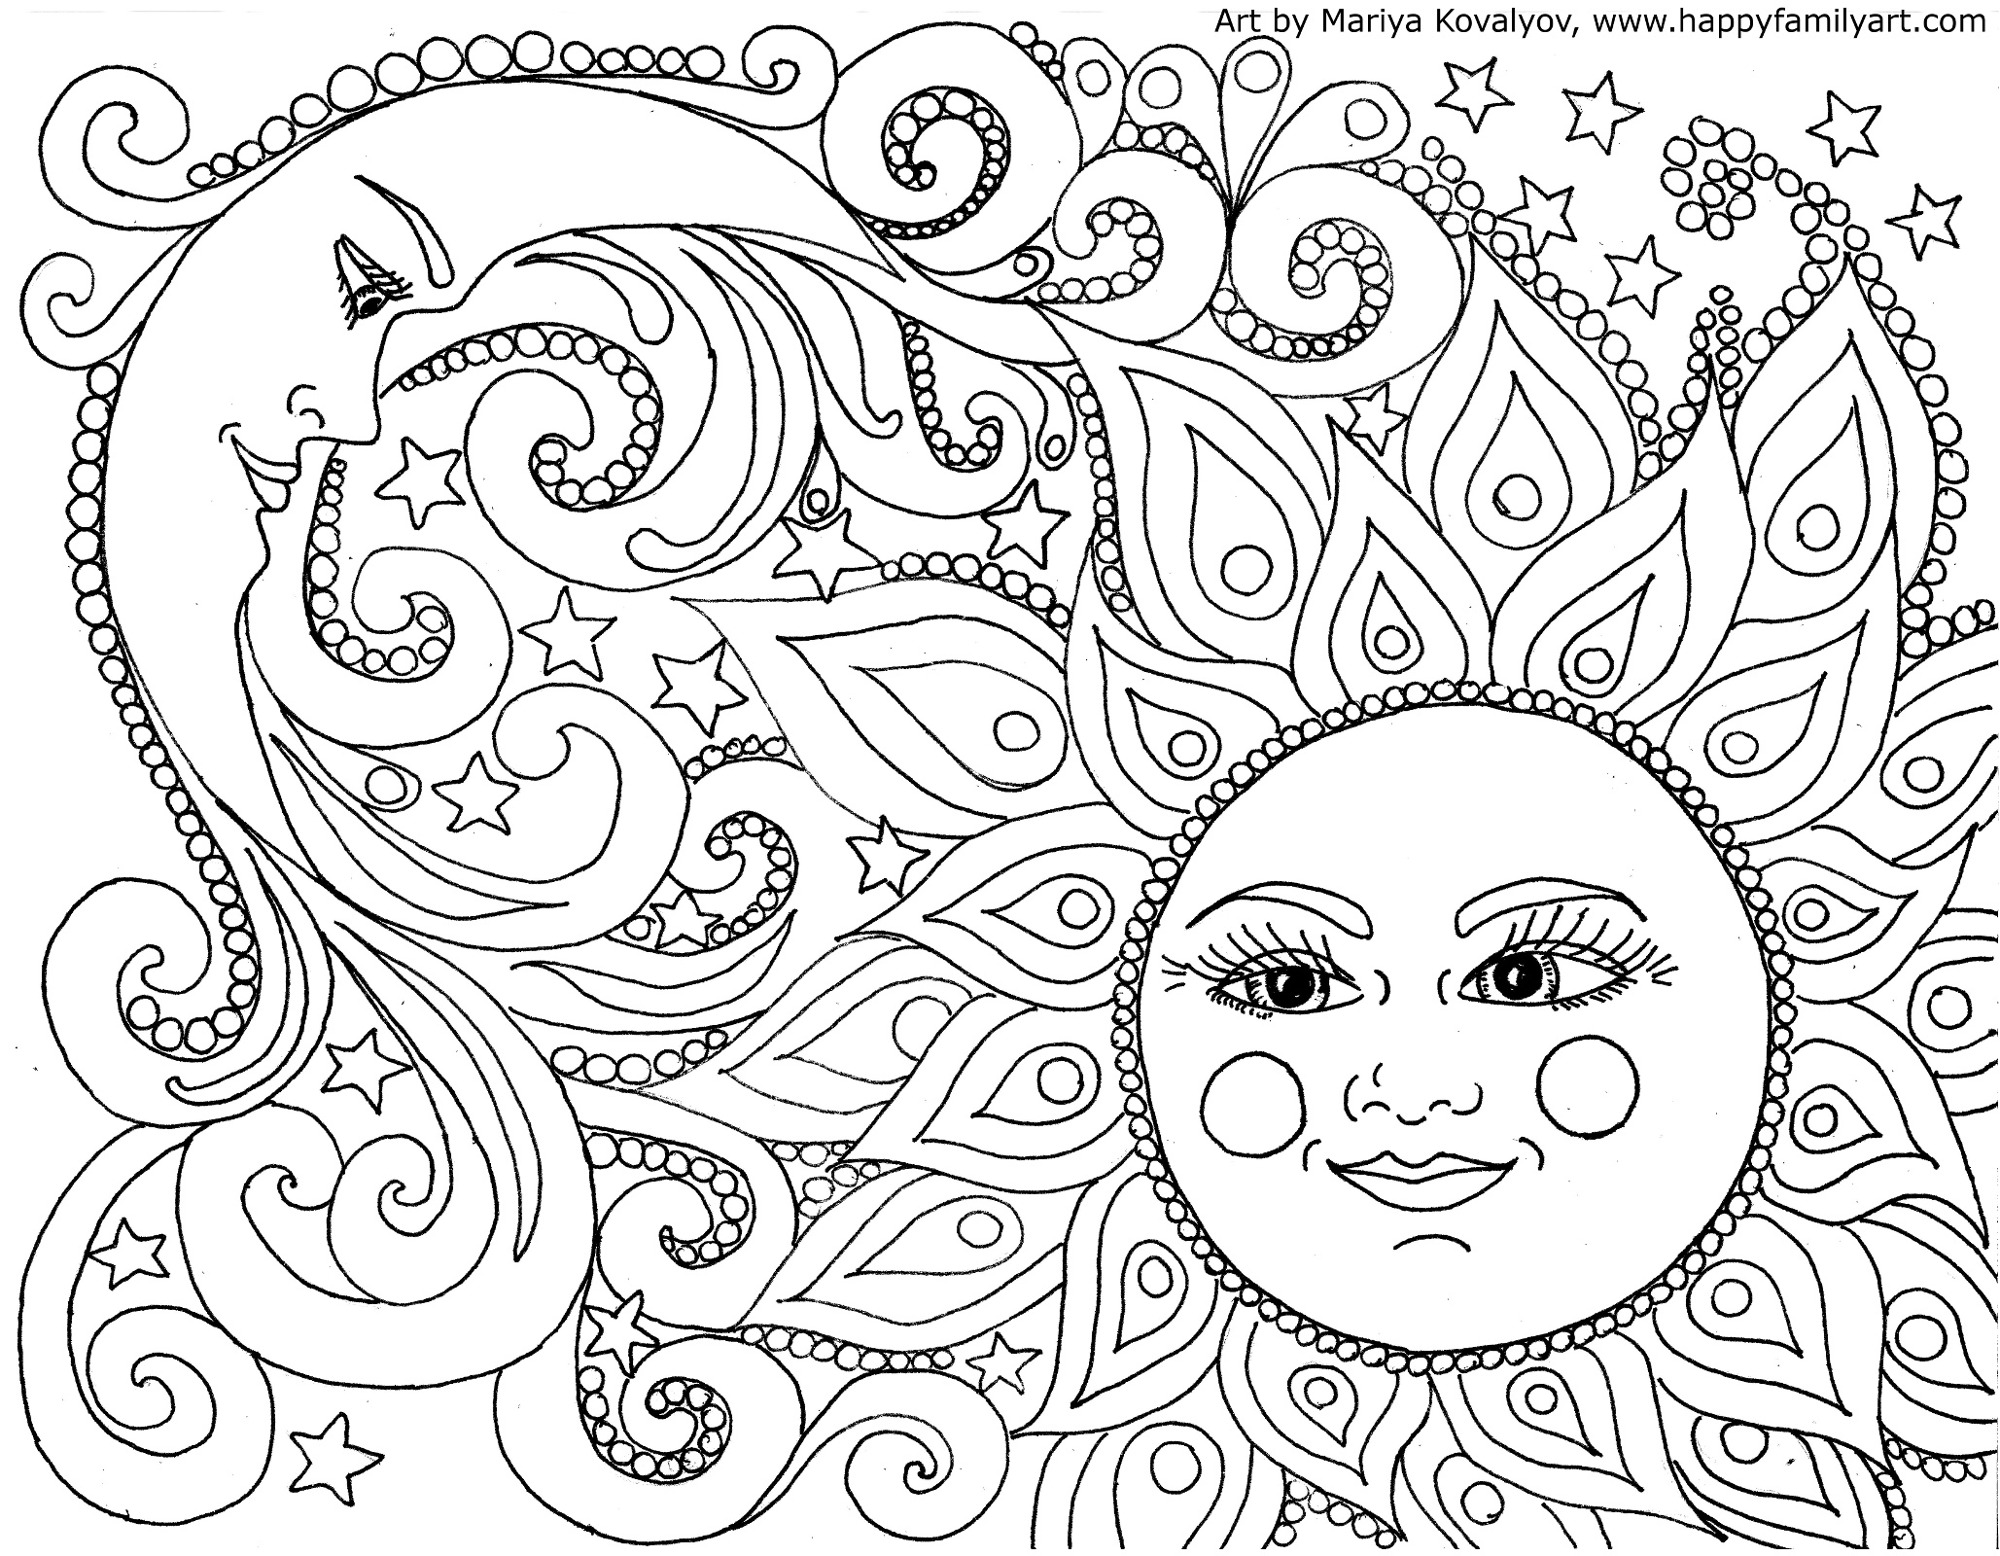 Spring Coloring Pages For Adults Pleasing Happy Family Art  Original And Fun Coloring Pages